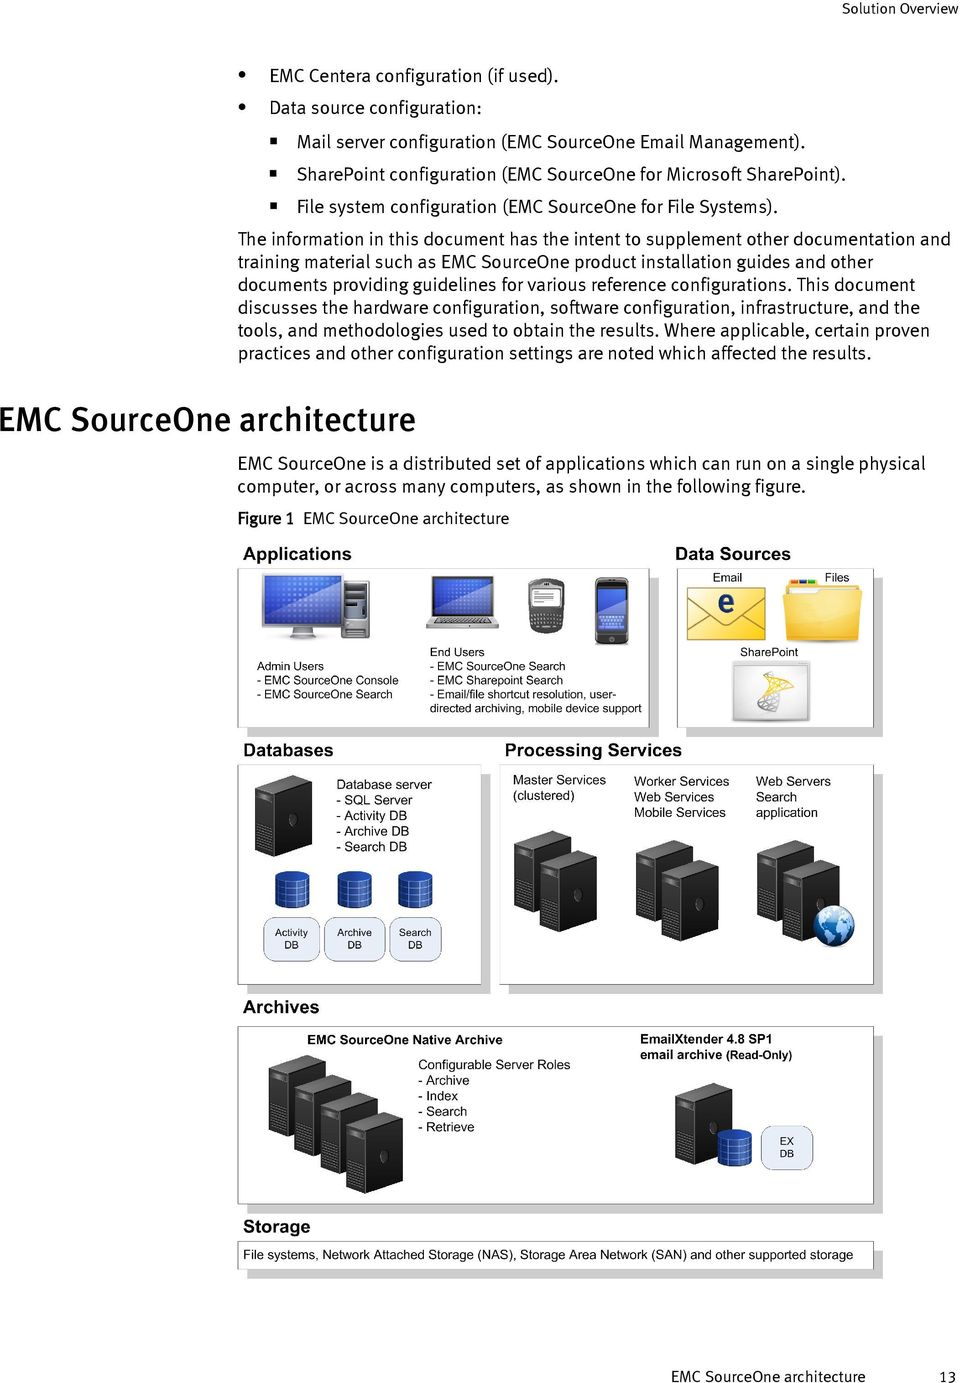 The information in this document has the intent to supplement other documentation and training material such as EMC SourceOne product installation guides and other documents providing guidelines for